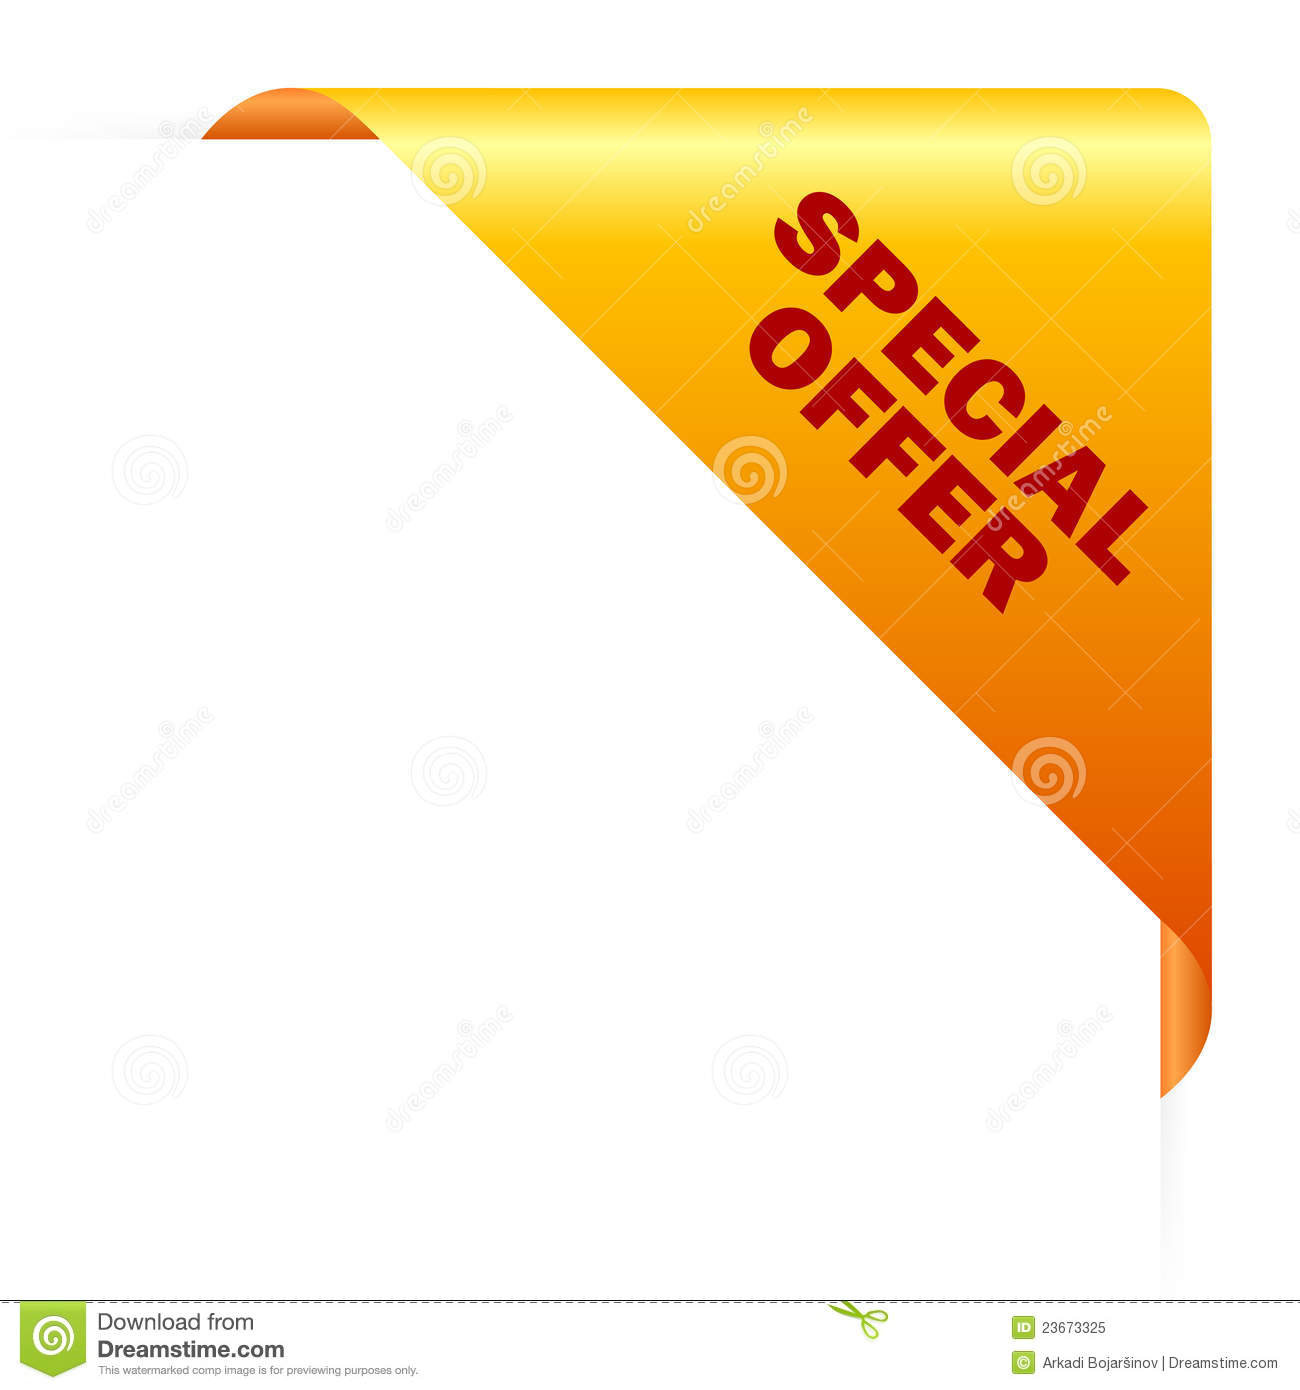 Offer: Special Offer Corner Royalty Free Stock Photo